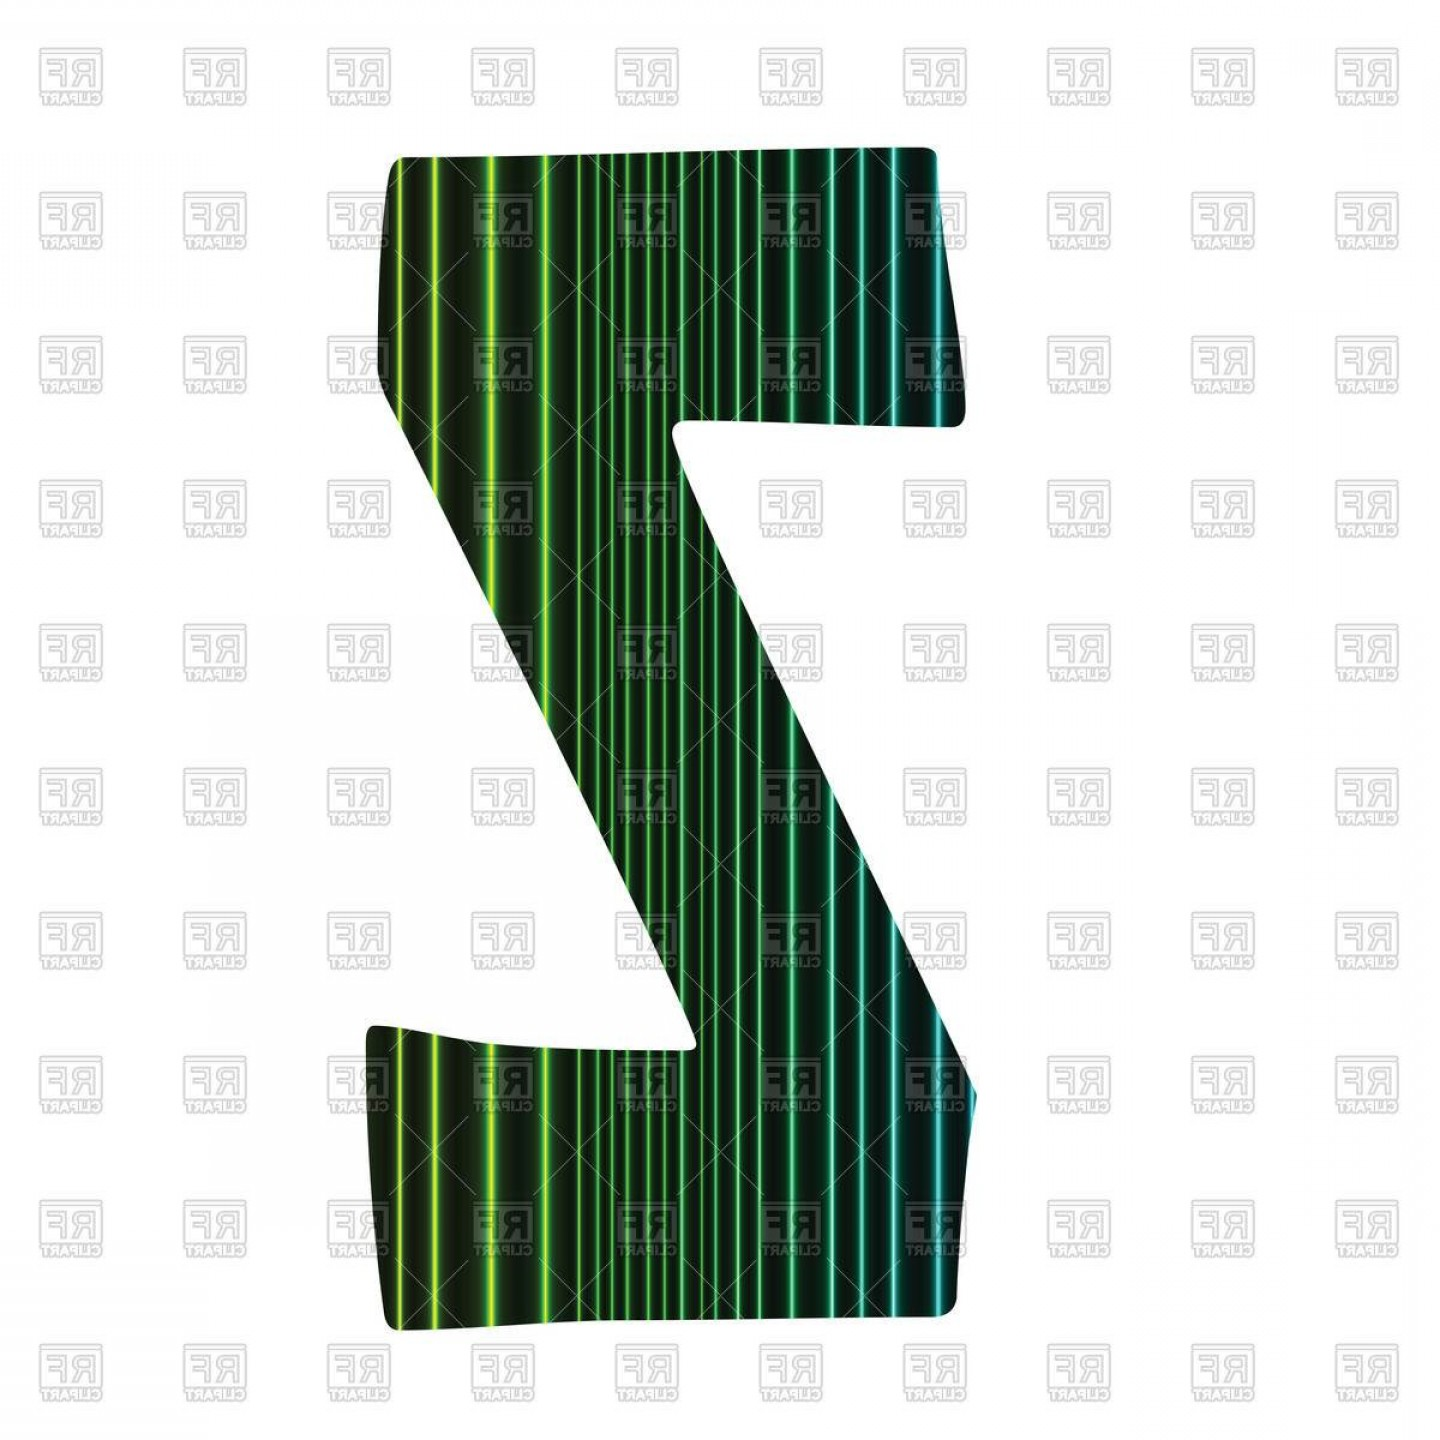 Letters Symbols Vector Art: Striped Letter Z Vector Image Vector Artwork Of Signs Symbols Ideas Of Letters That Start With Z